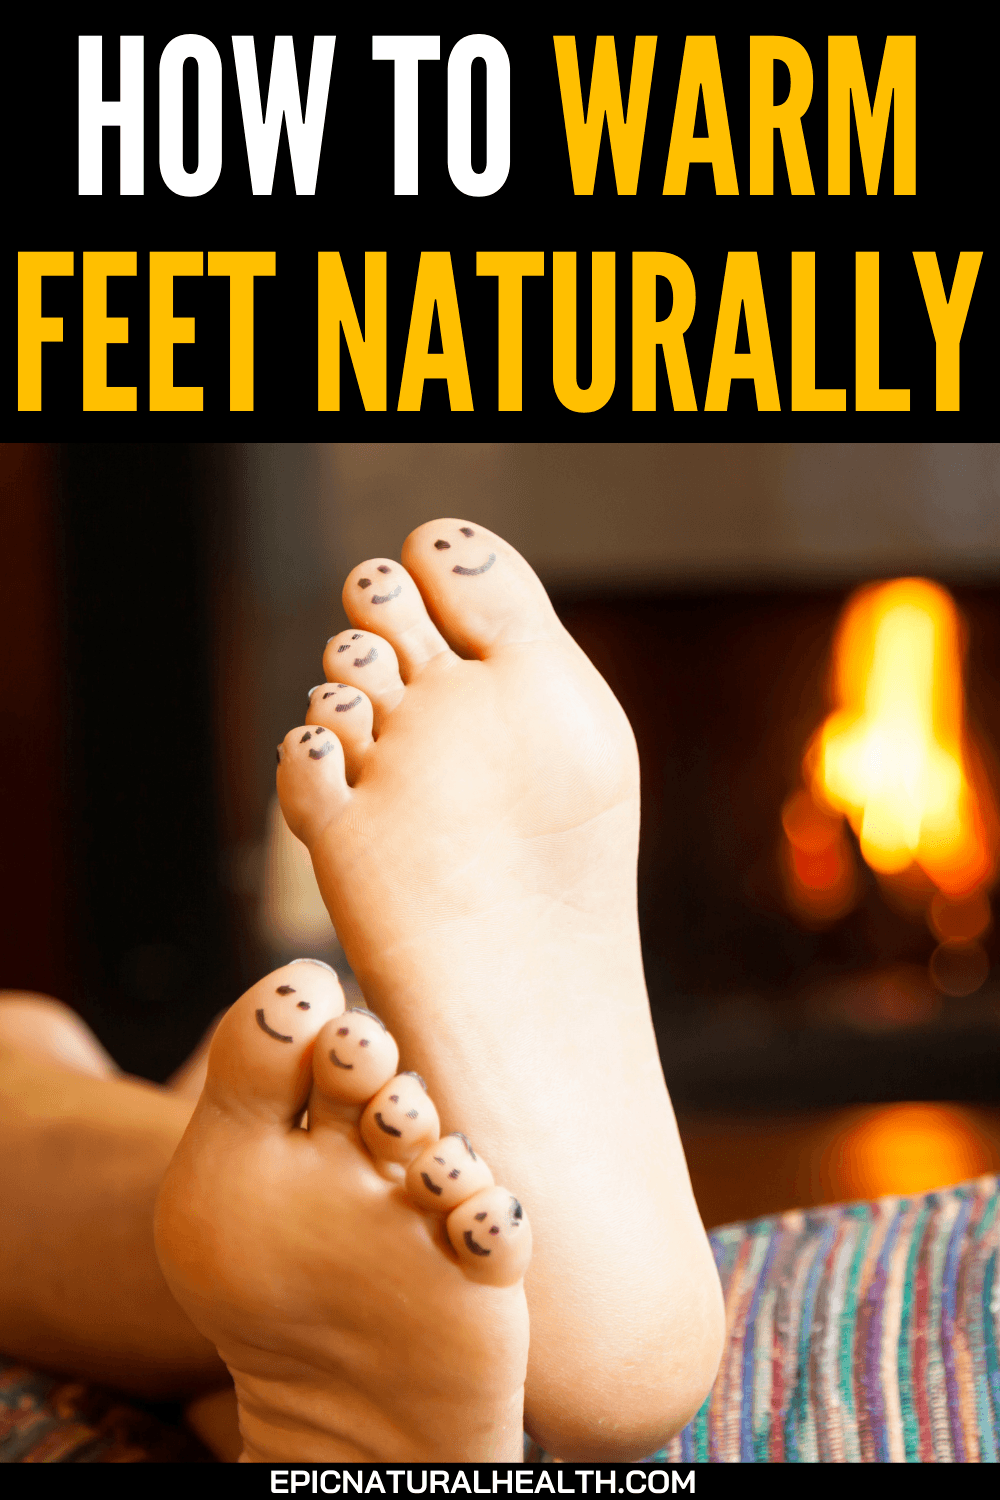 How to Warm Feet Naturally